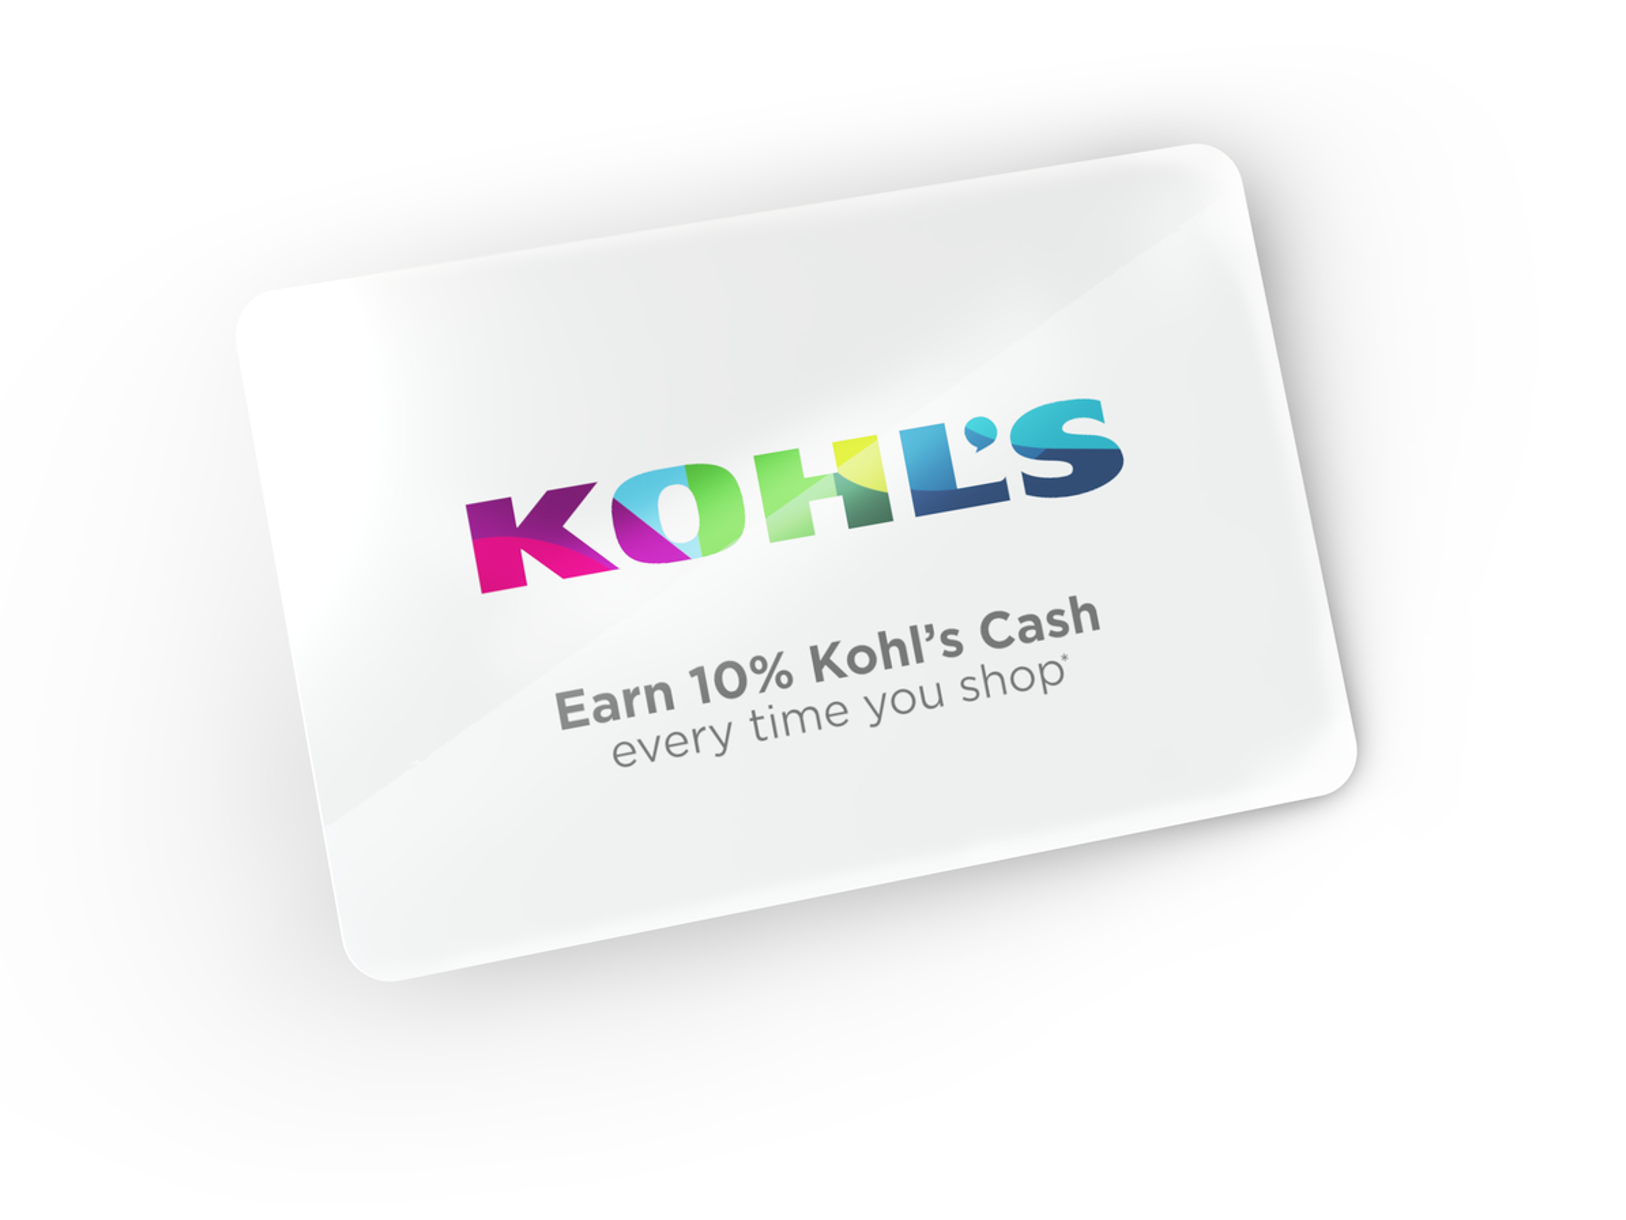 Use Kohl S Admin Infinite And Thousands Of Other Assets To Build An Immersive Game Or Experience Select From A Wide Range Of Models Roblox Games Crying Girl